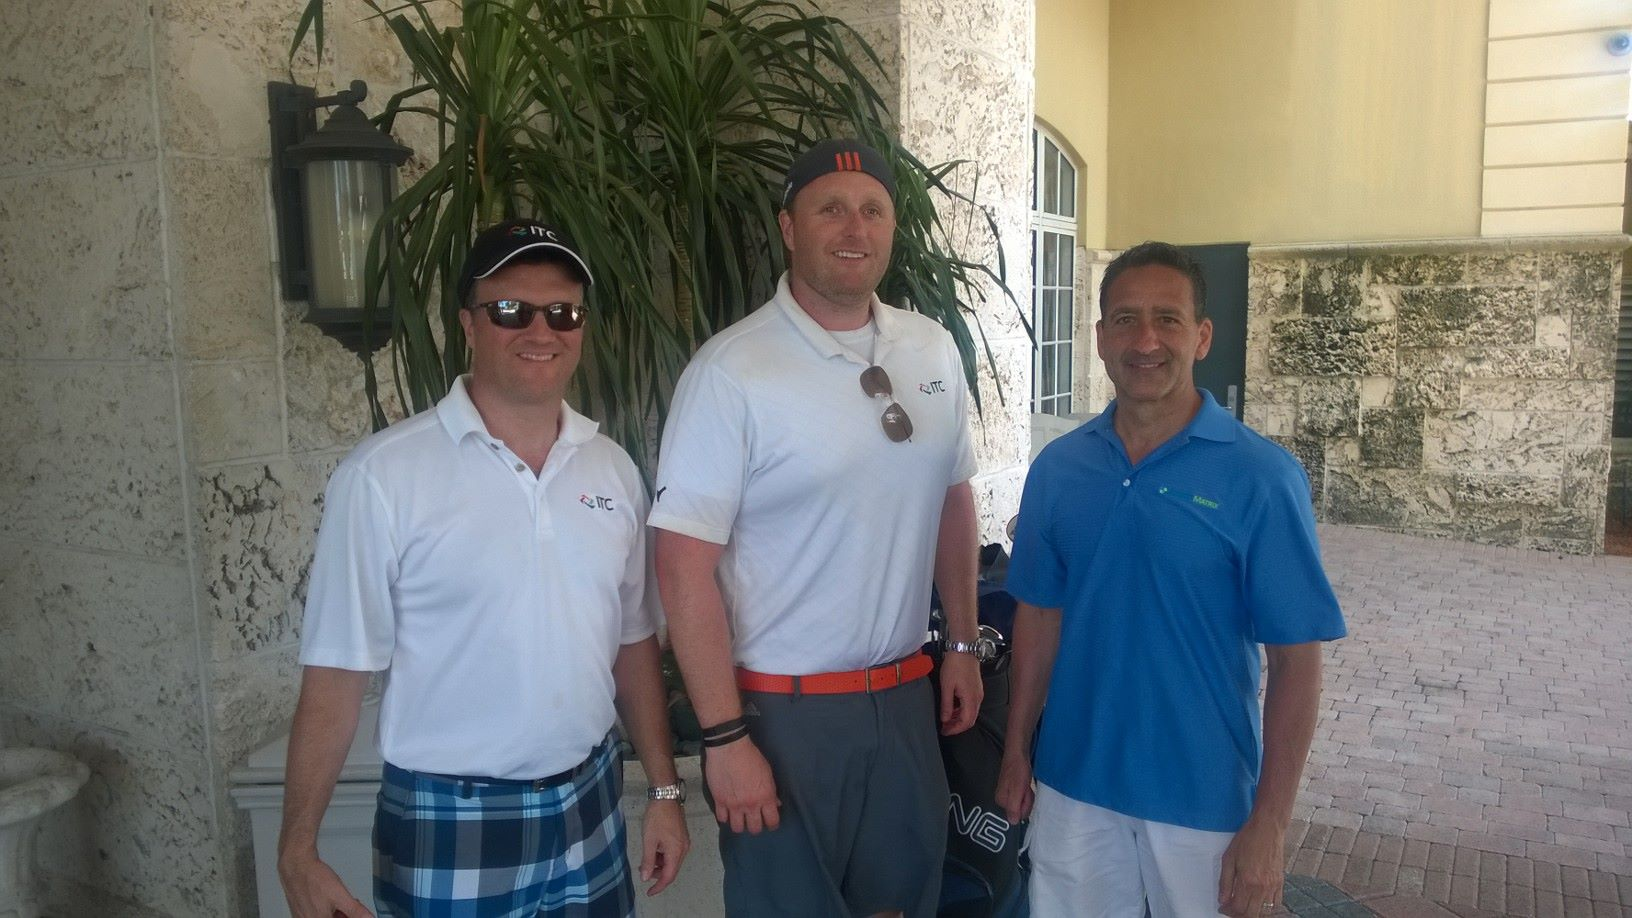 Justin Costa golfing with Laird Rixford and Daniel Ochoa